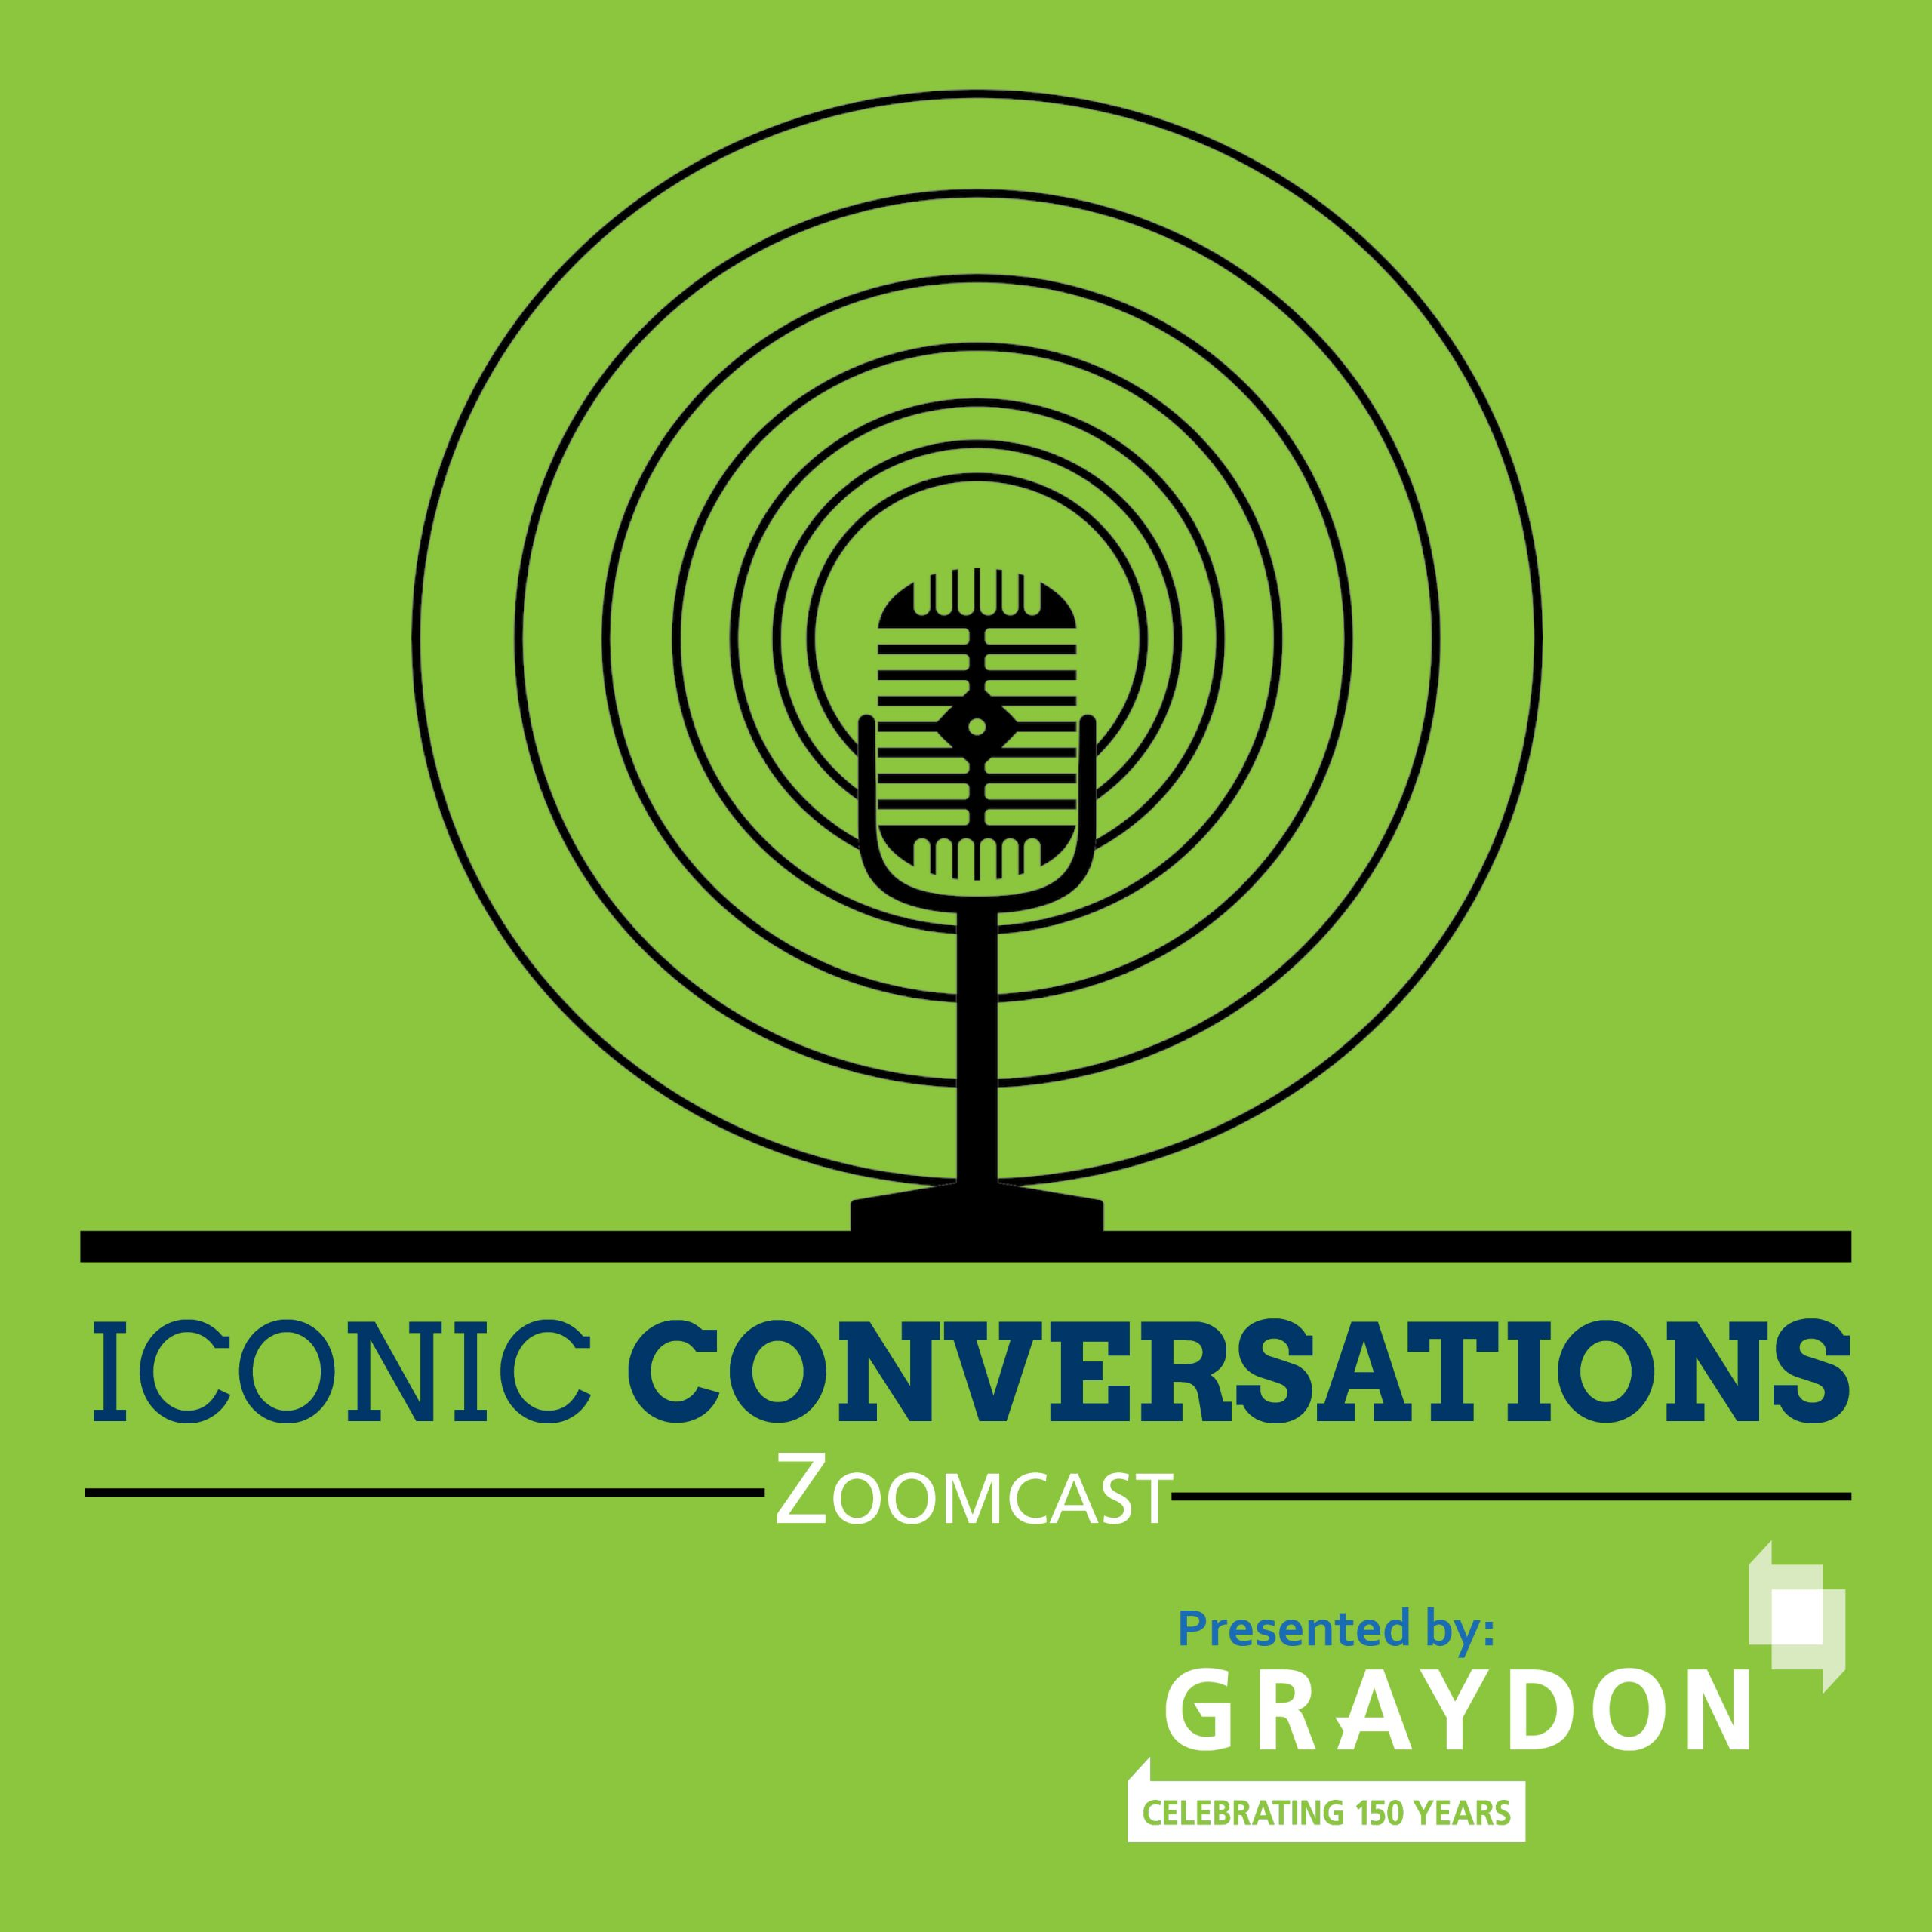 Iconic Conversations Zoomcast presented by Graydon